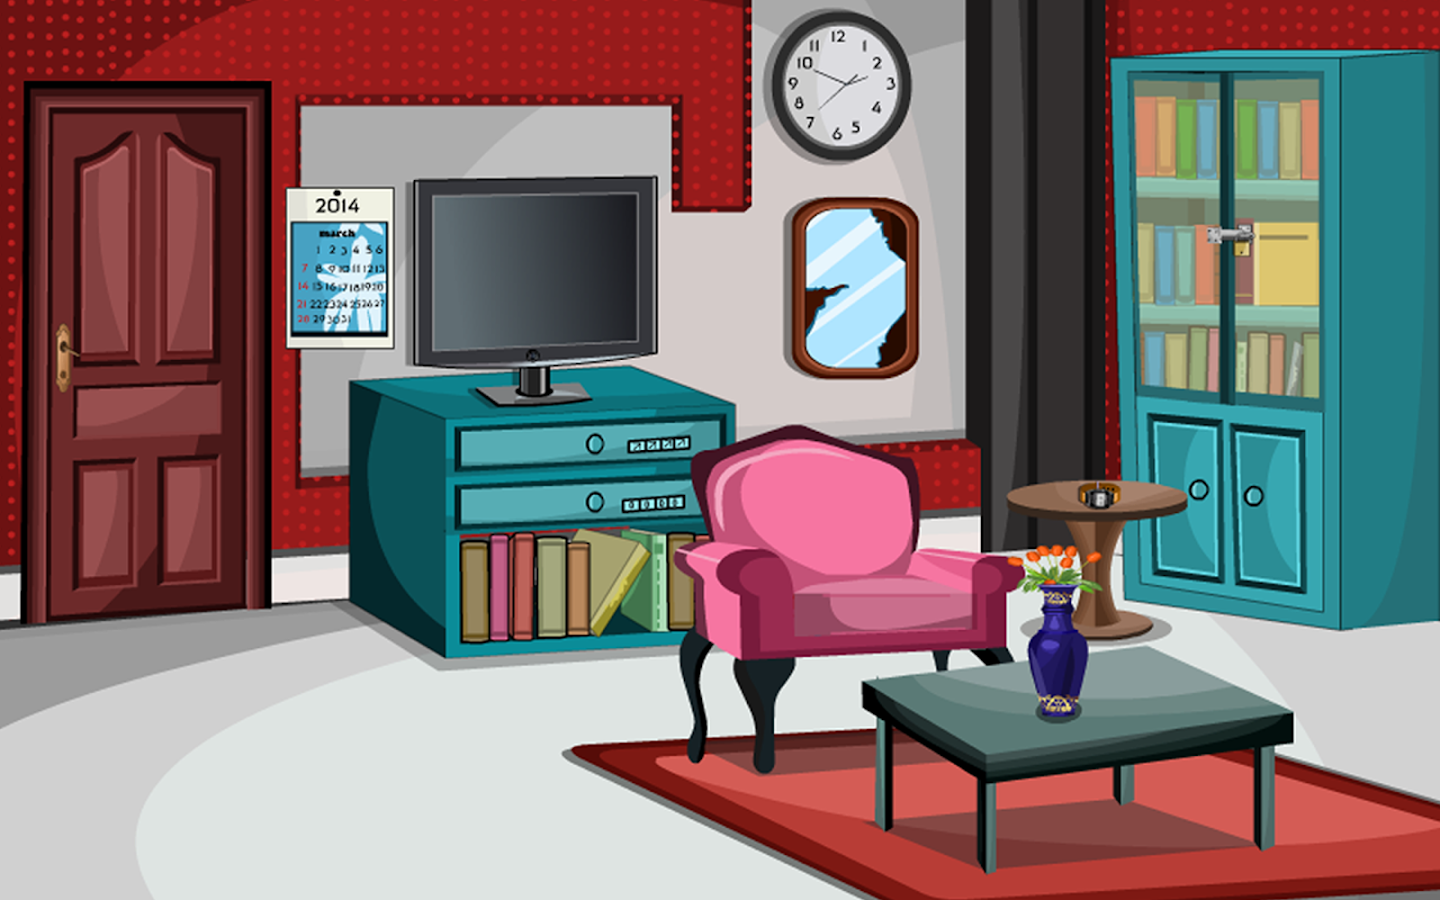 Escape game red living room android apps on google play for Living room 94 game